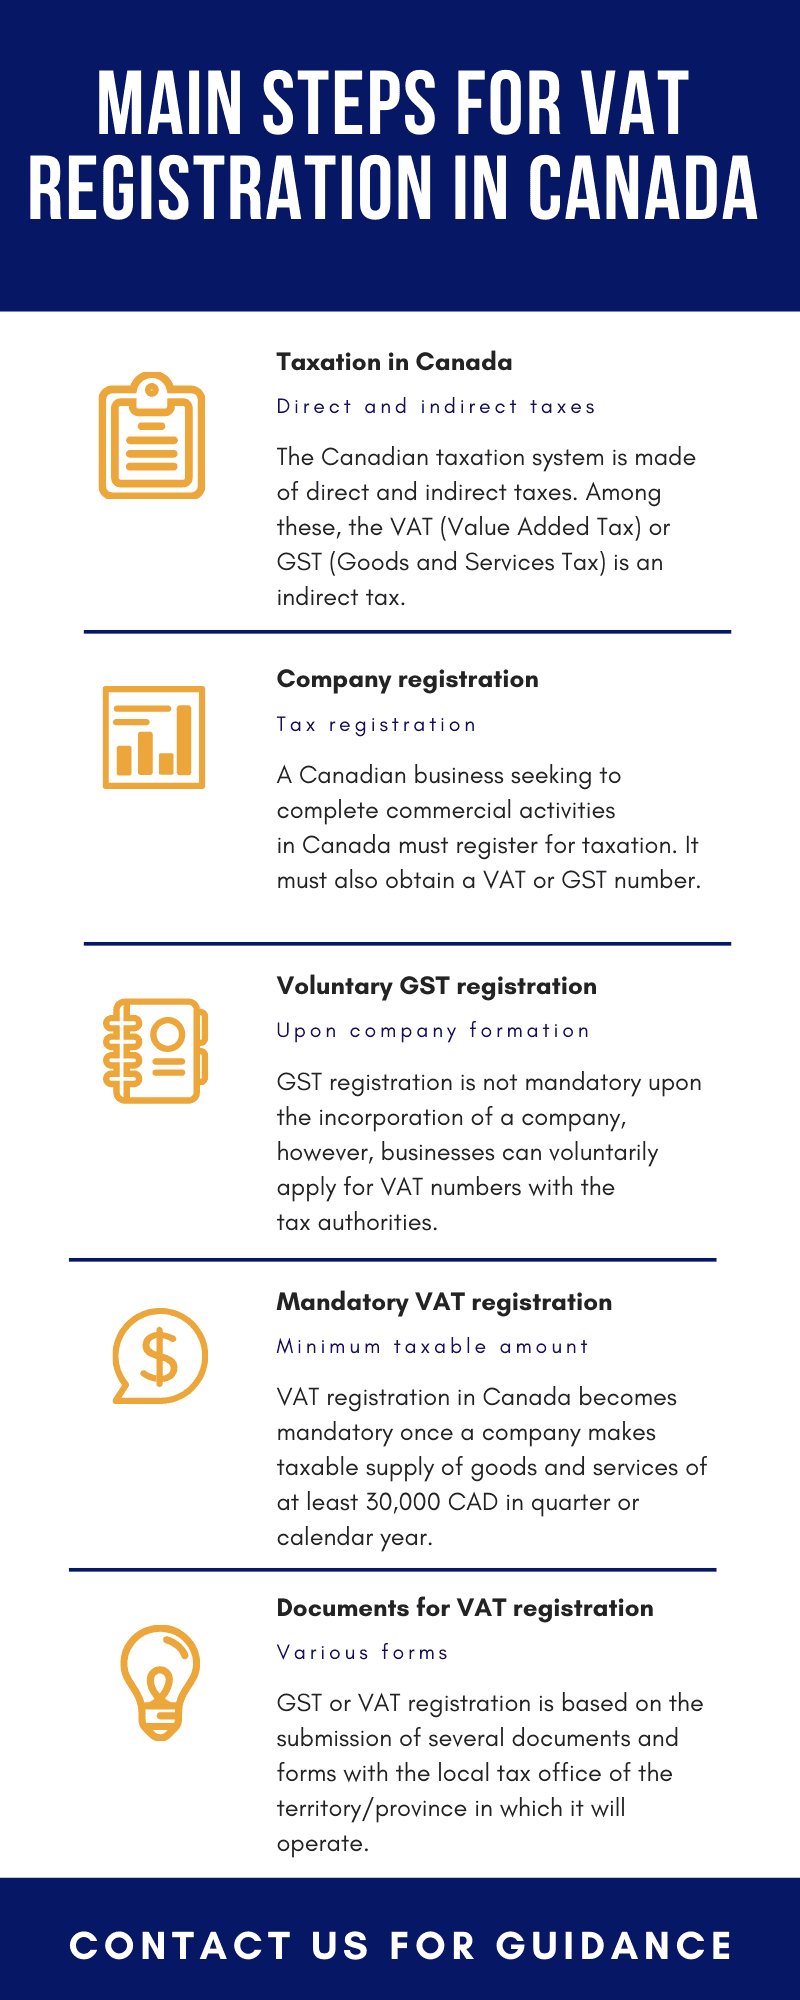 Main steps for VAT registration in Canada